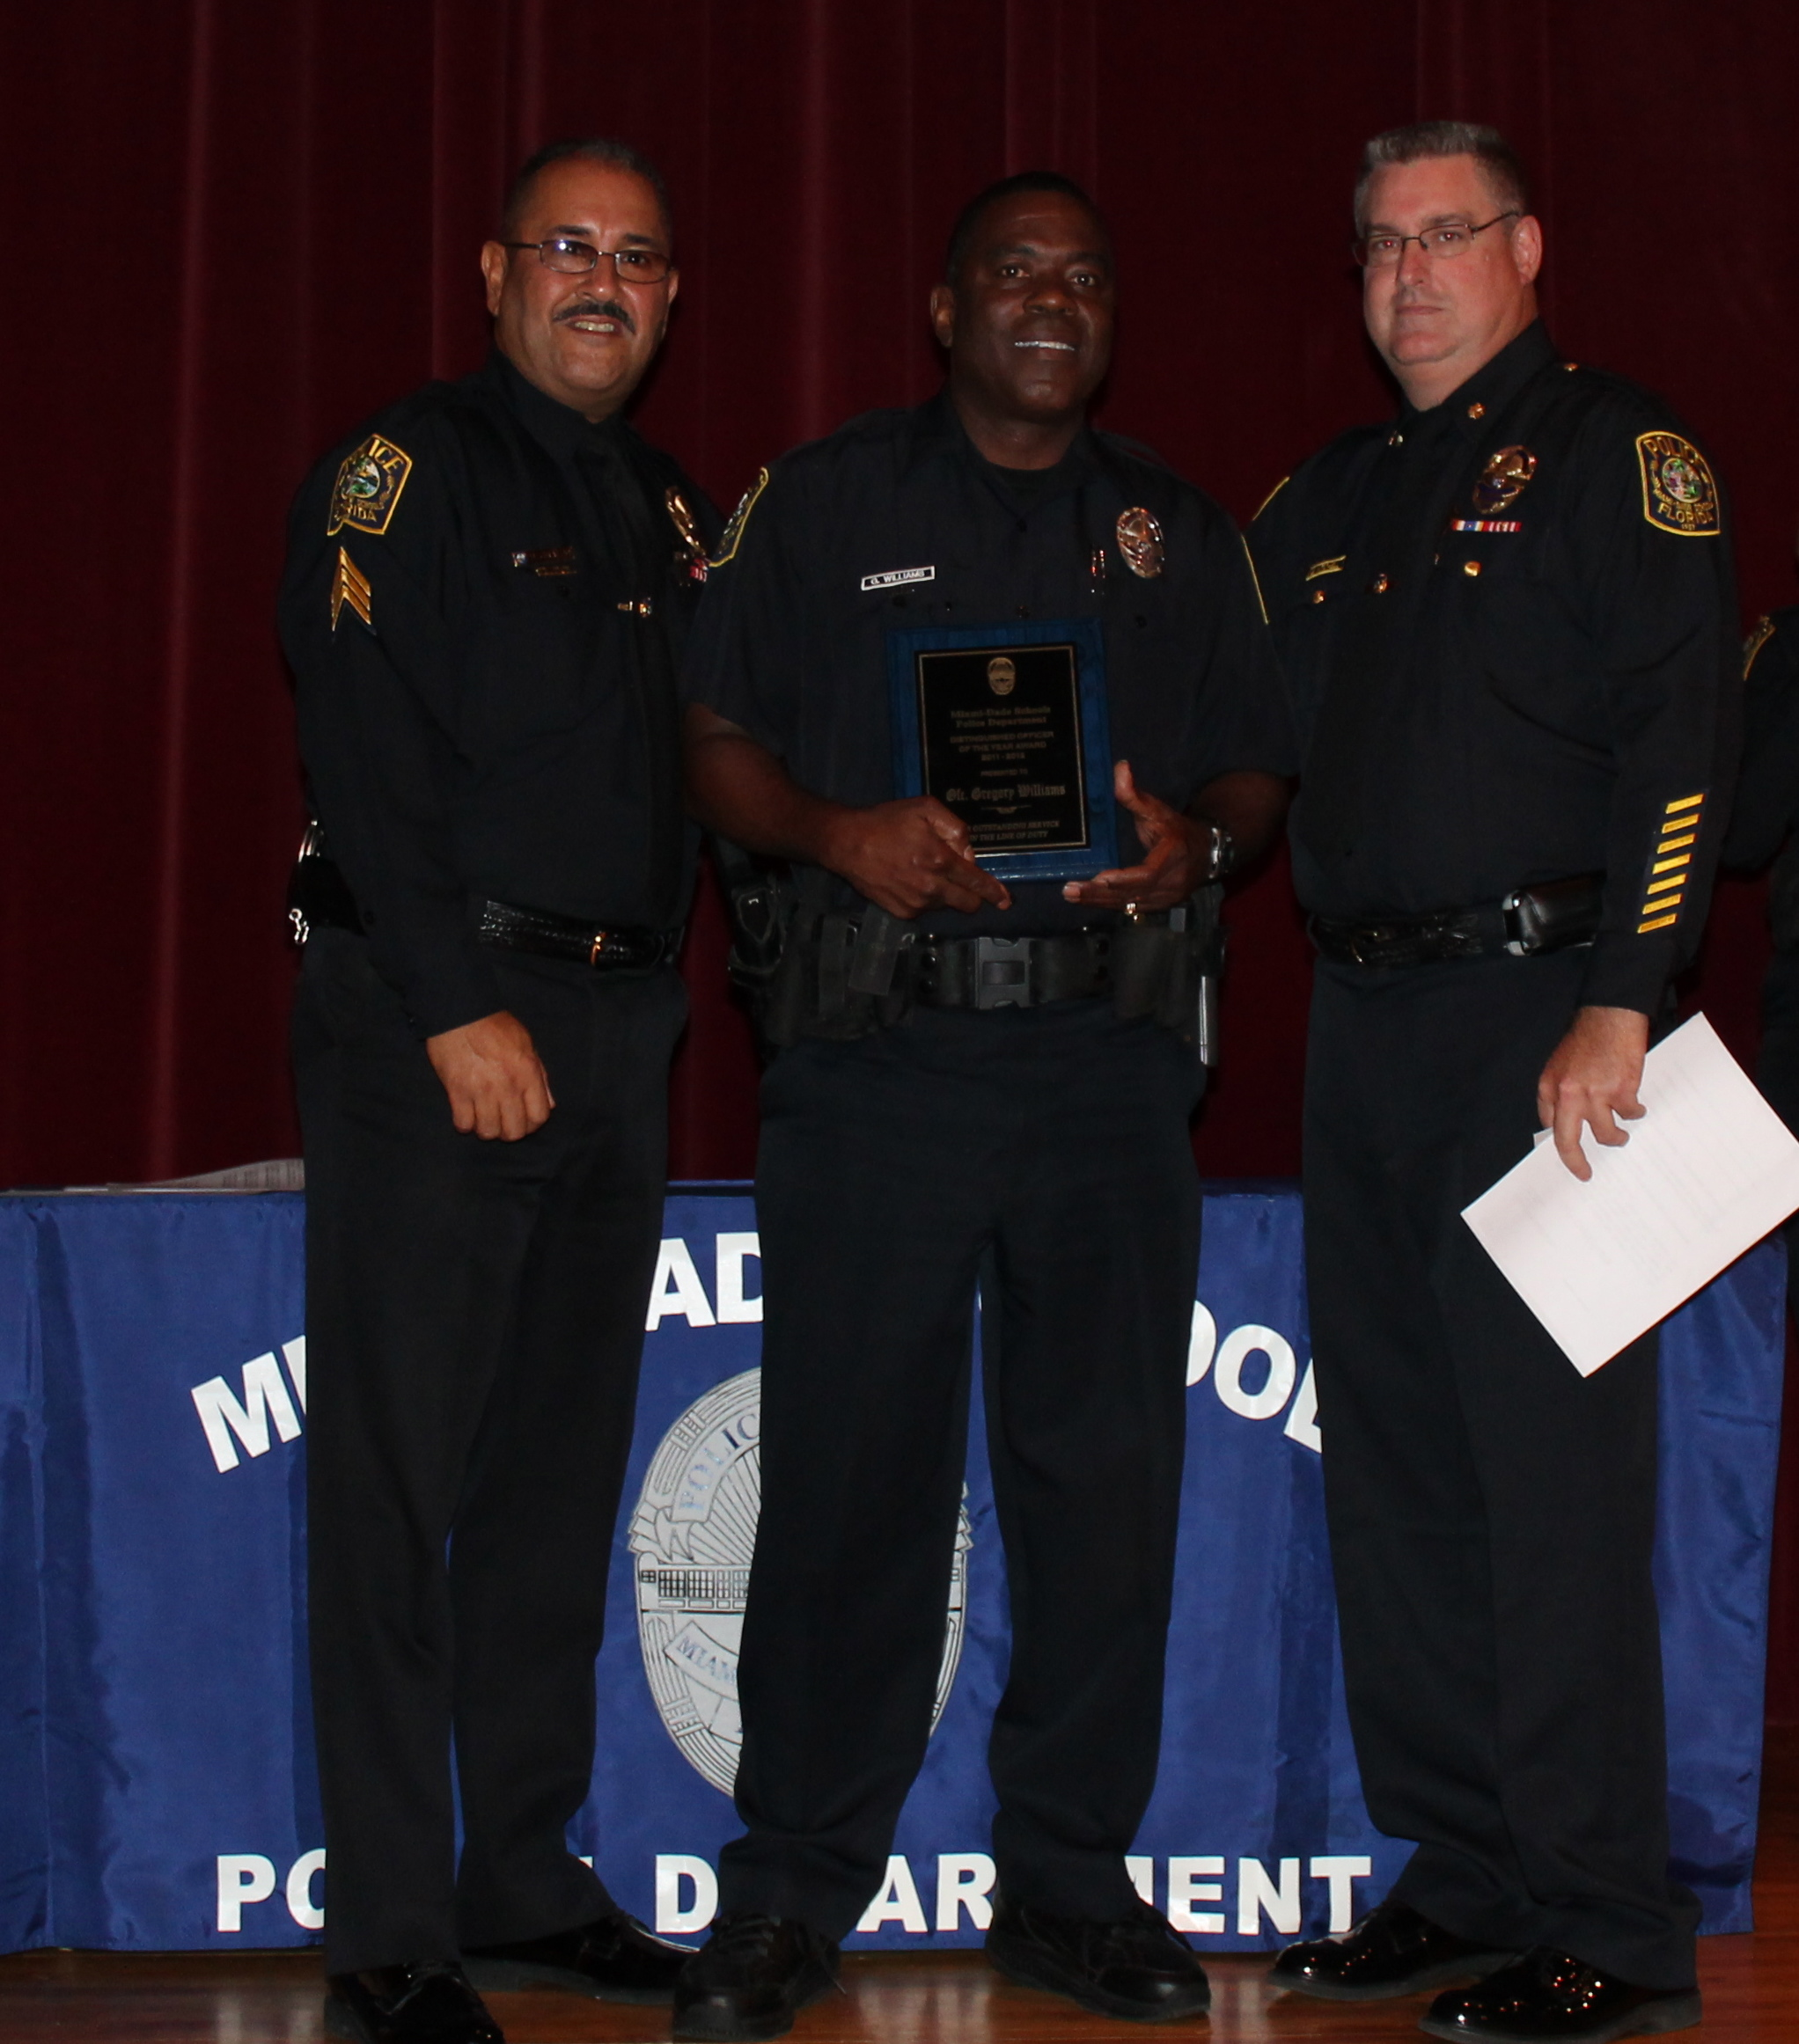 2011-12 Department Annual Award Ceremony